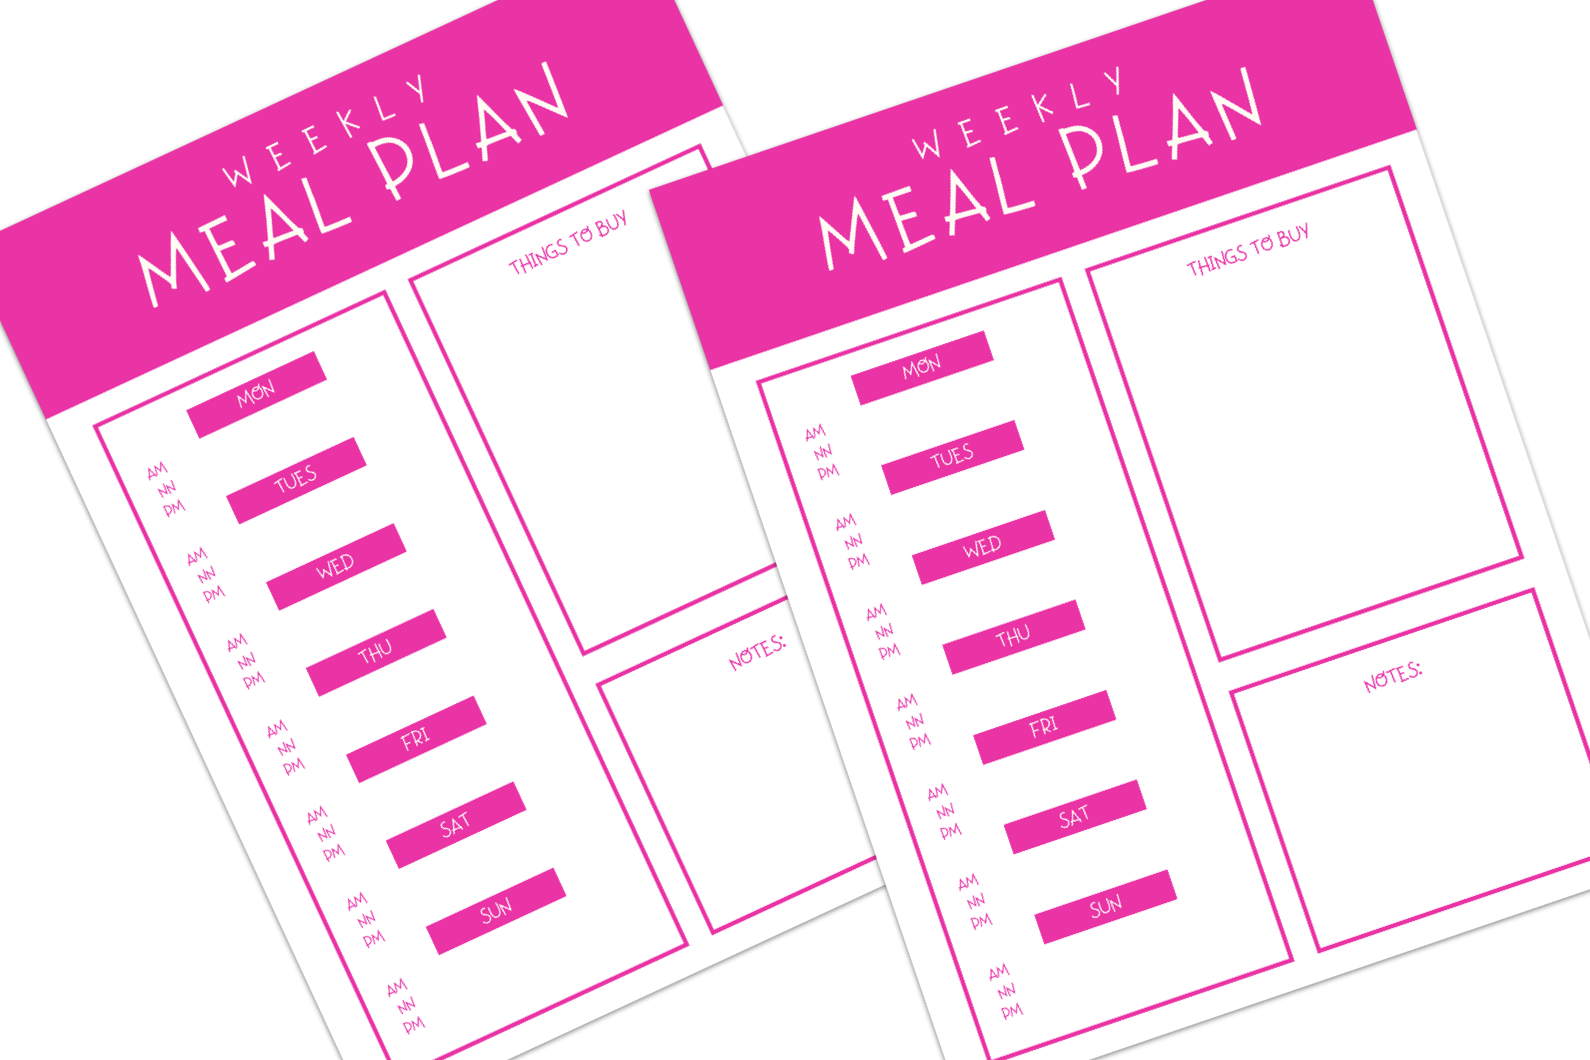 two copies of pink and white themed printable meal planner with three sections: days of the week, things to buy, and notes